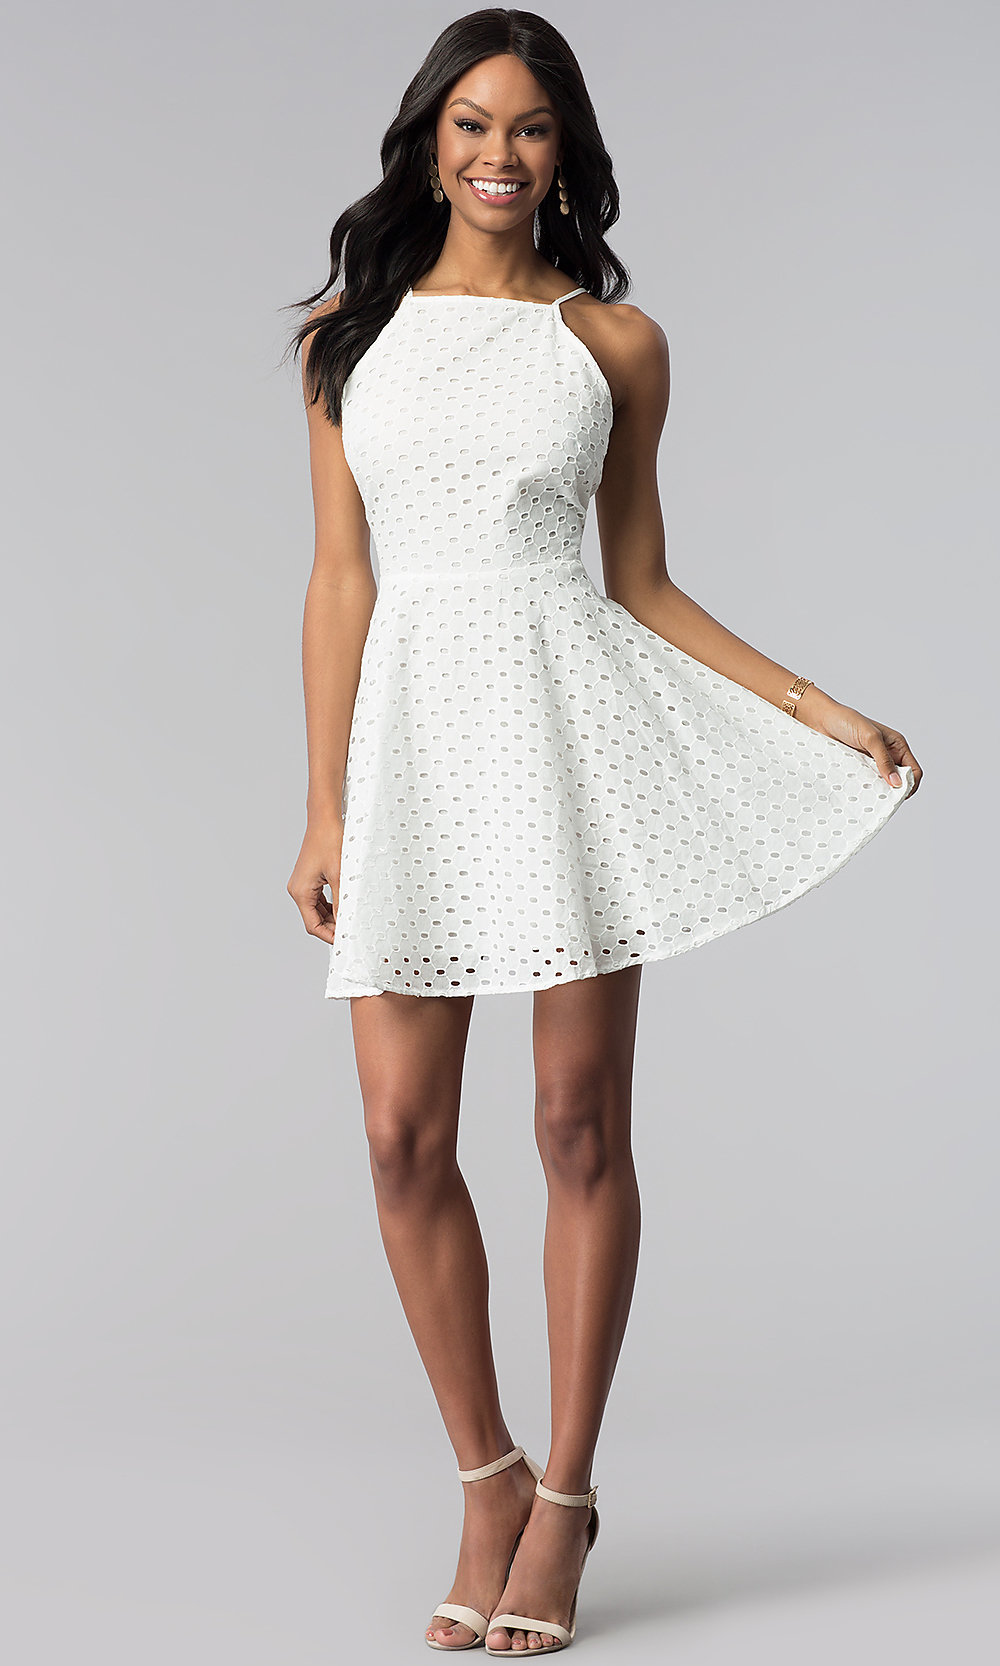 6cc9c98223 ... white graduation party dress in eyelet lace. Style  ESL-62066D. Tap to  expand